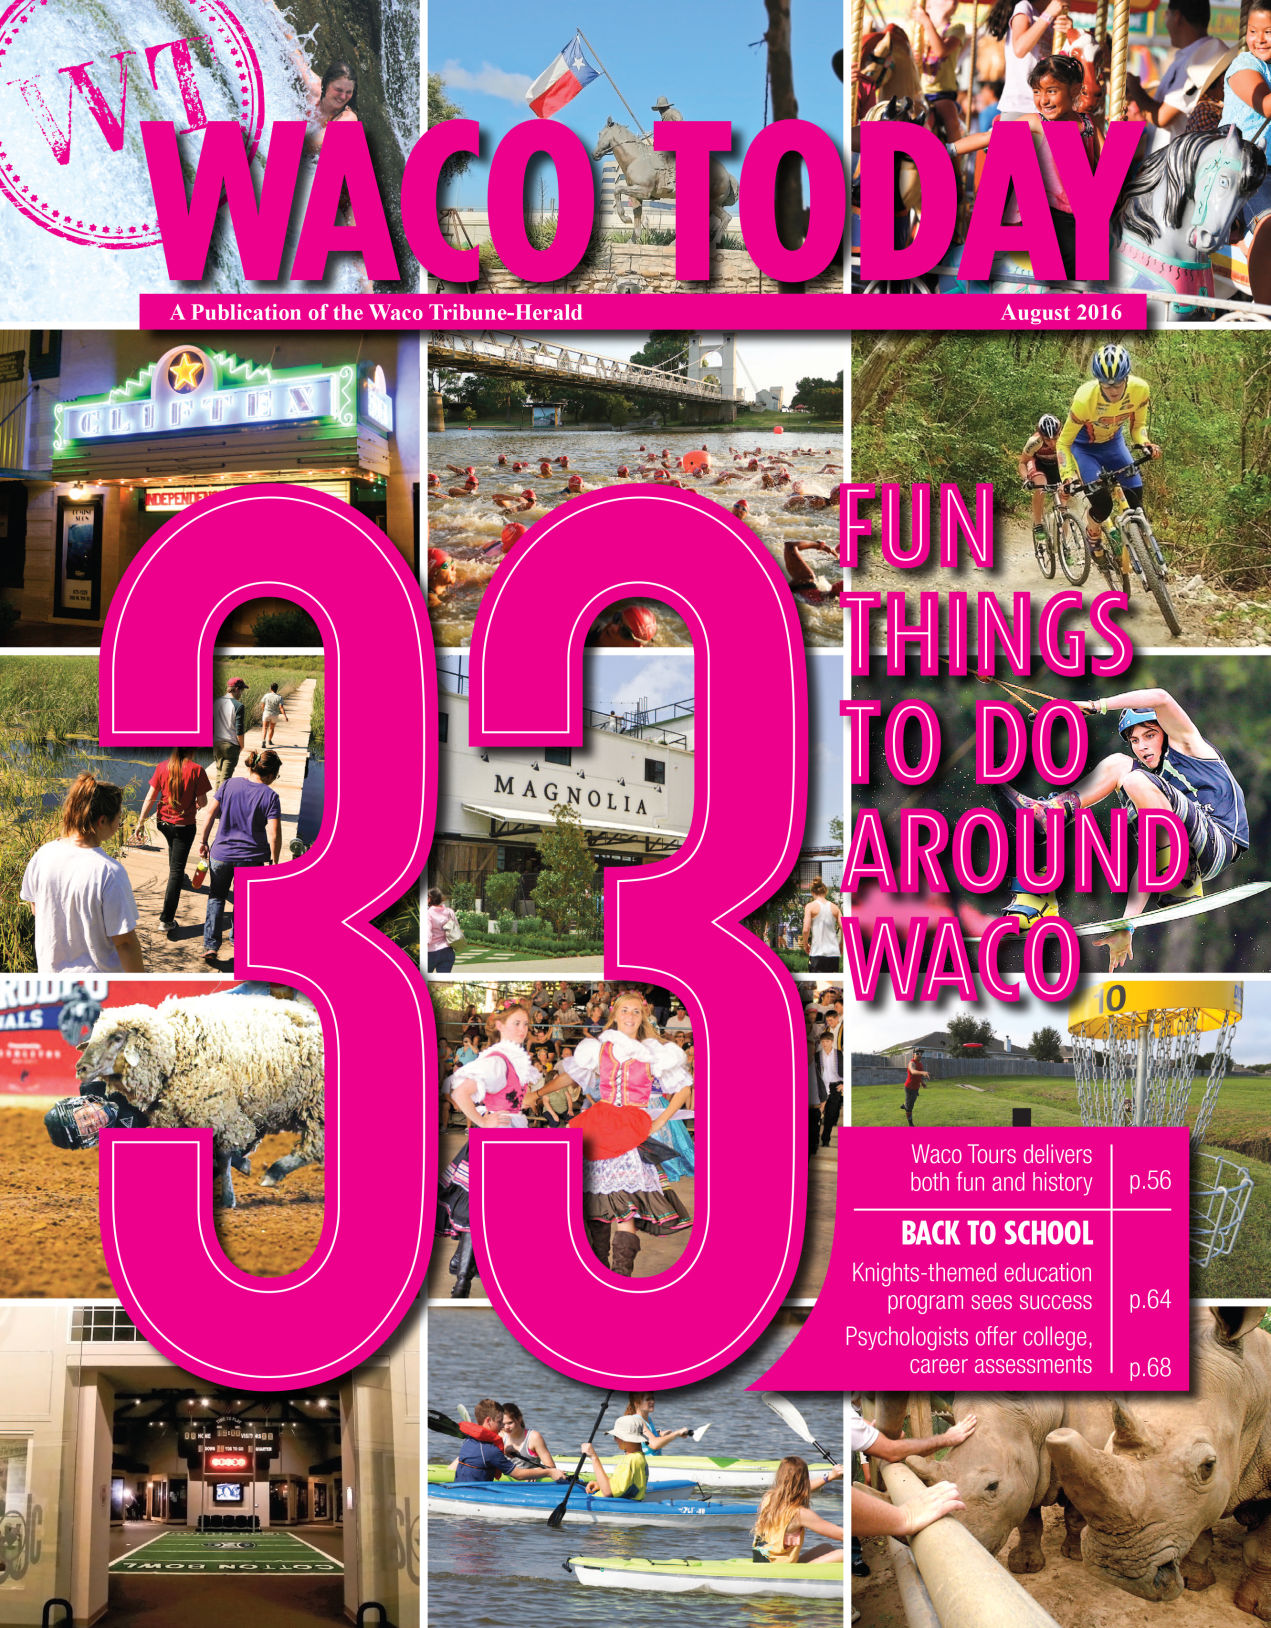 Date Ideas Waco Tx 2019 33 fun things to do around Waco | Waco Today | wacotrib.com